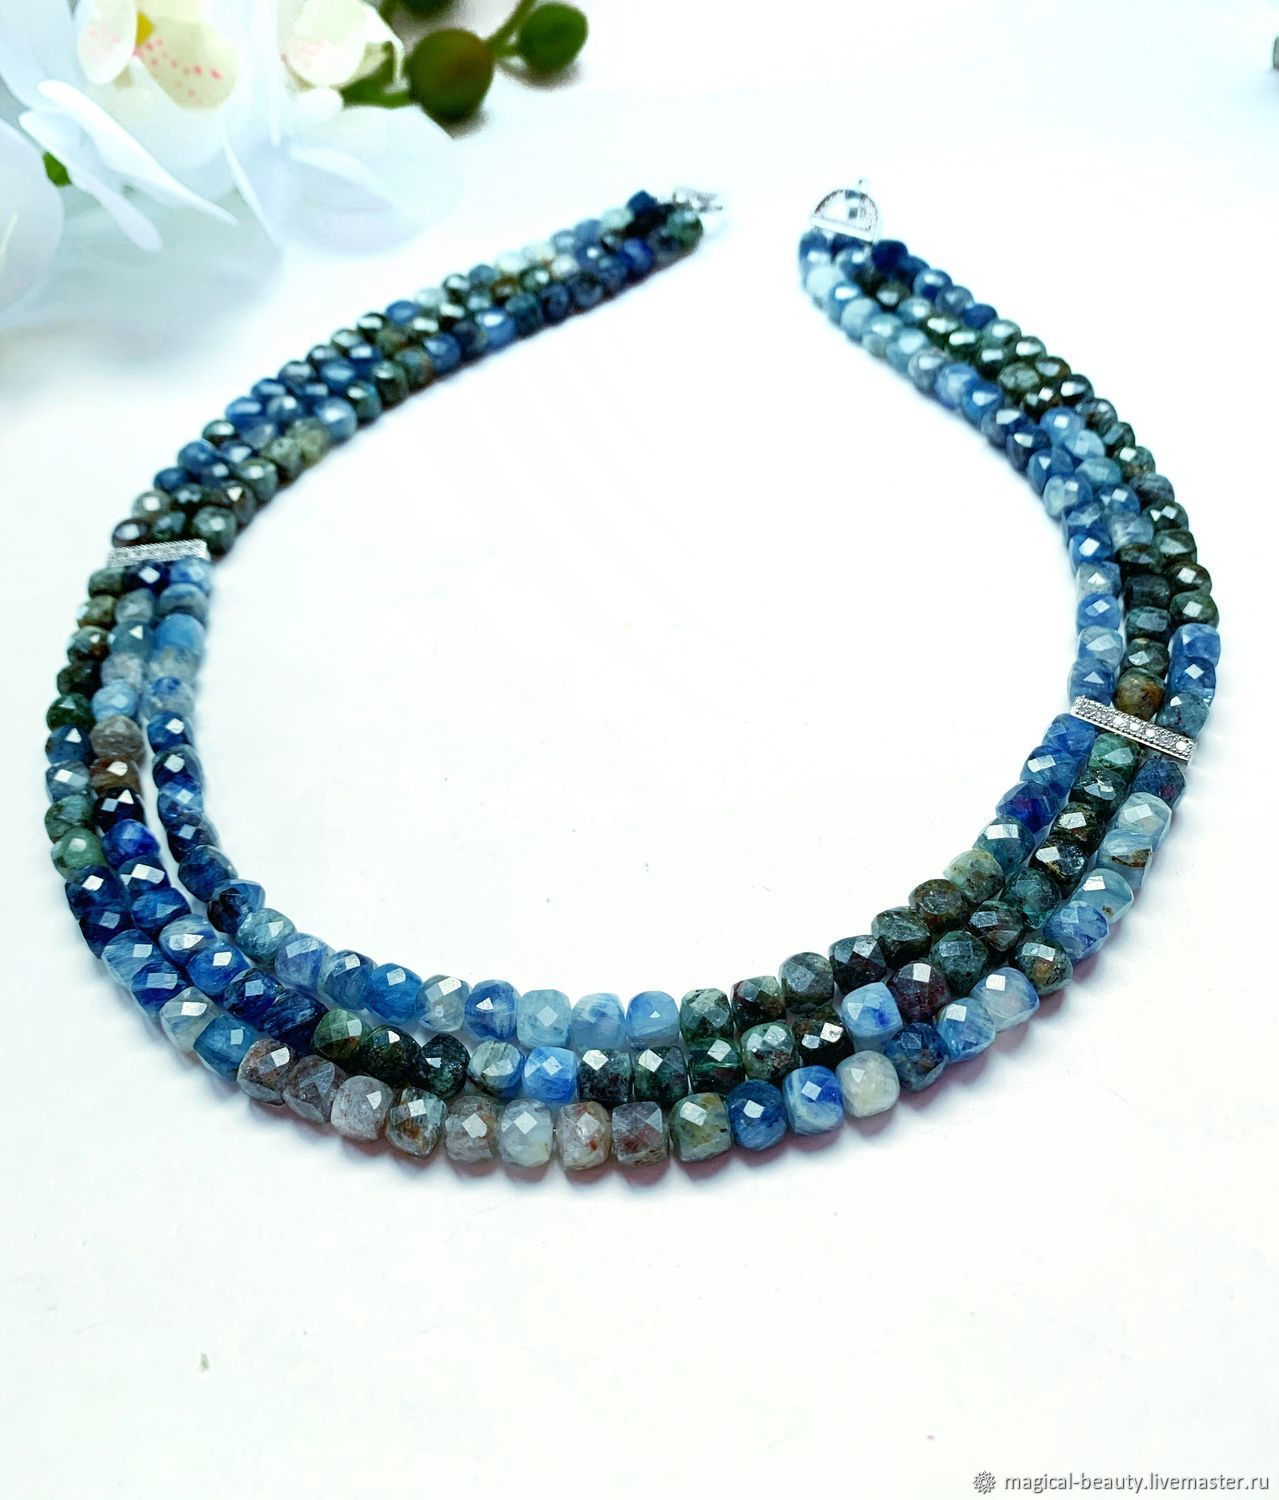 Natural kyanite necklace, Necklace, Moscow,  Фото №1